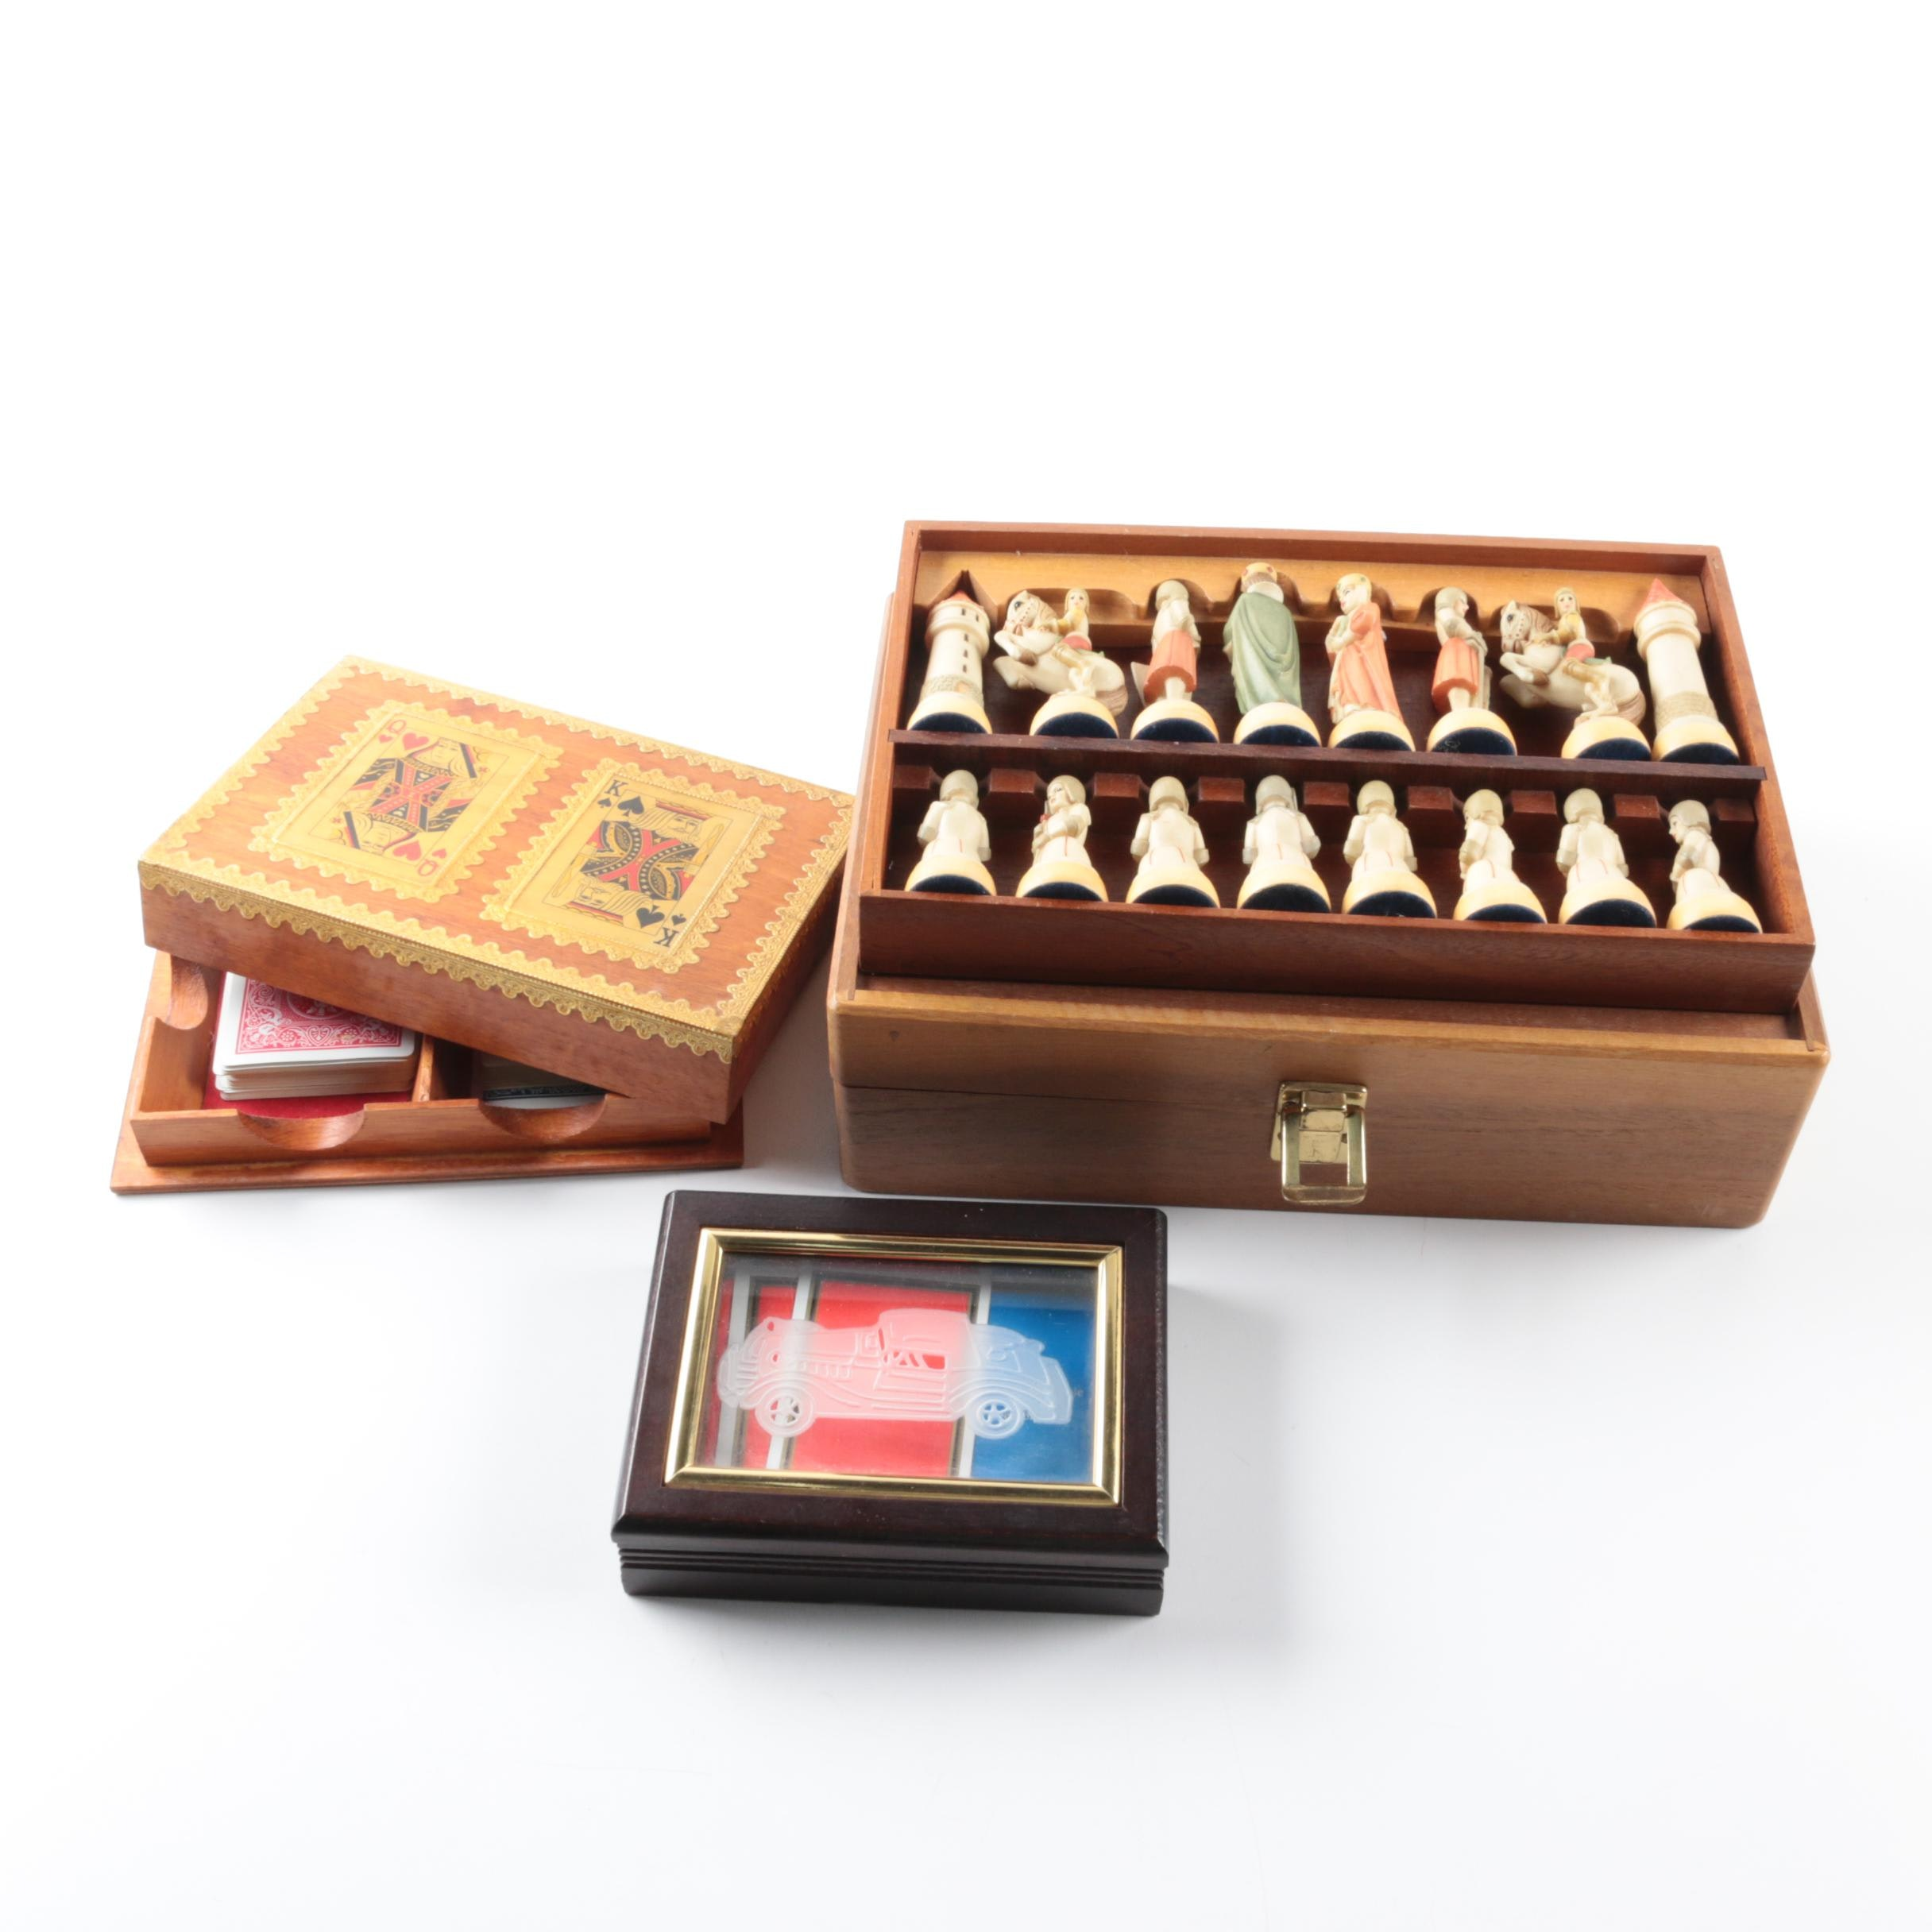 Chess Pieces and Two Playing Card Holder Boxes